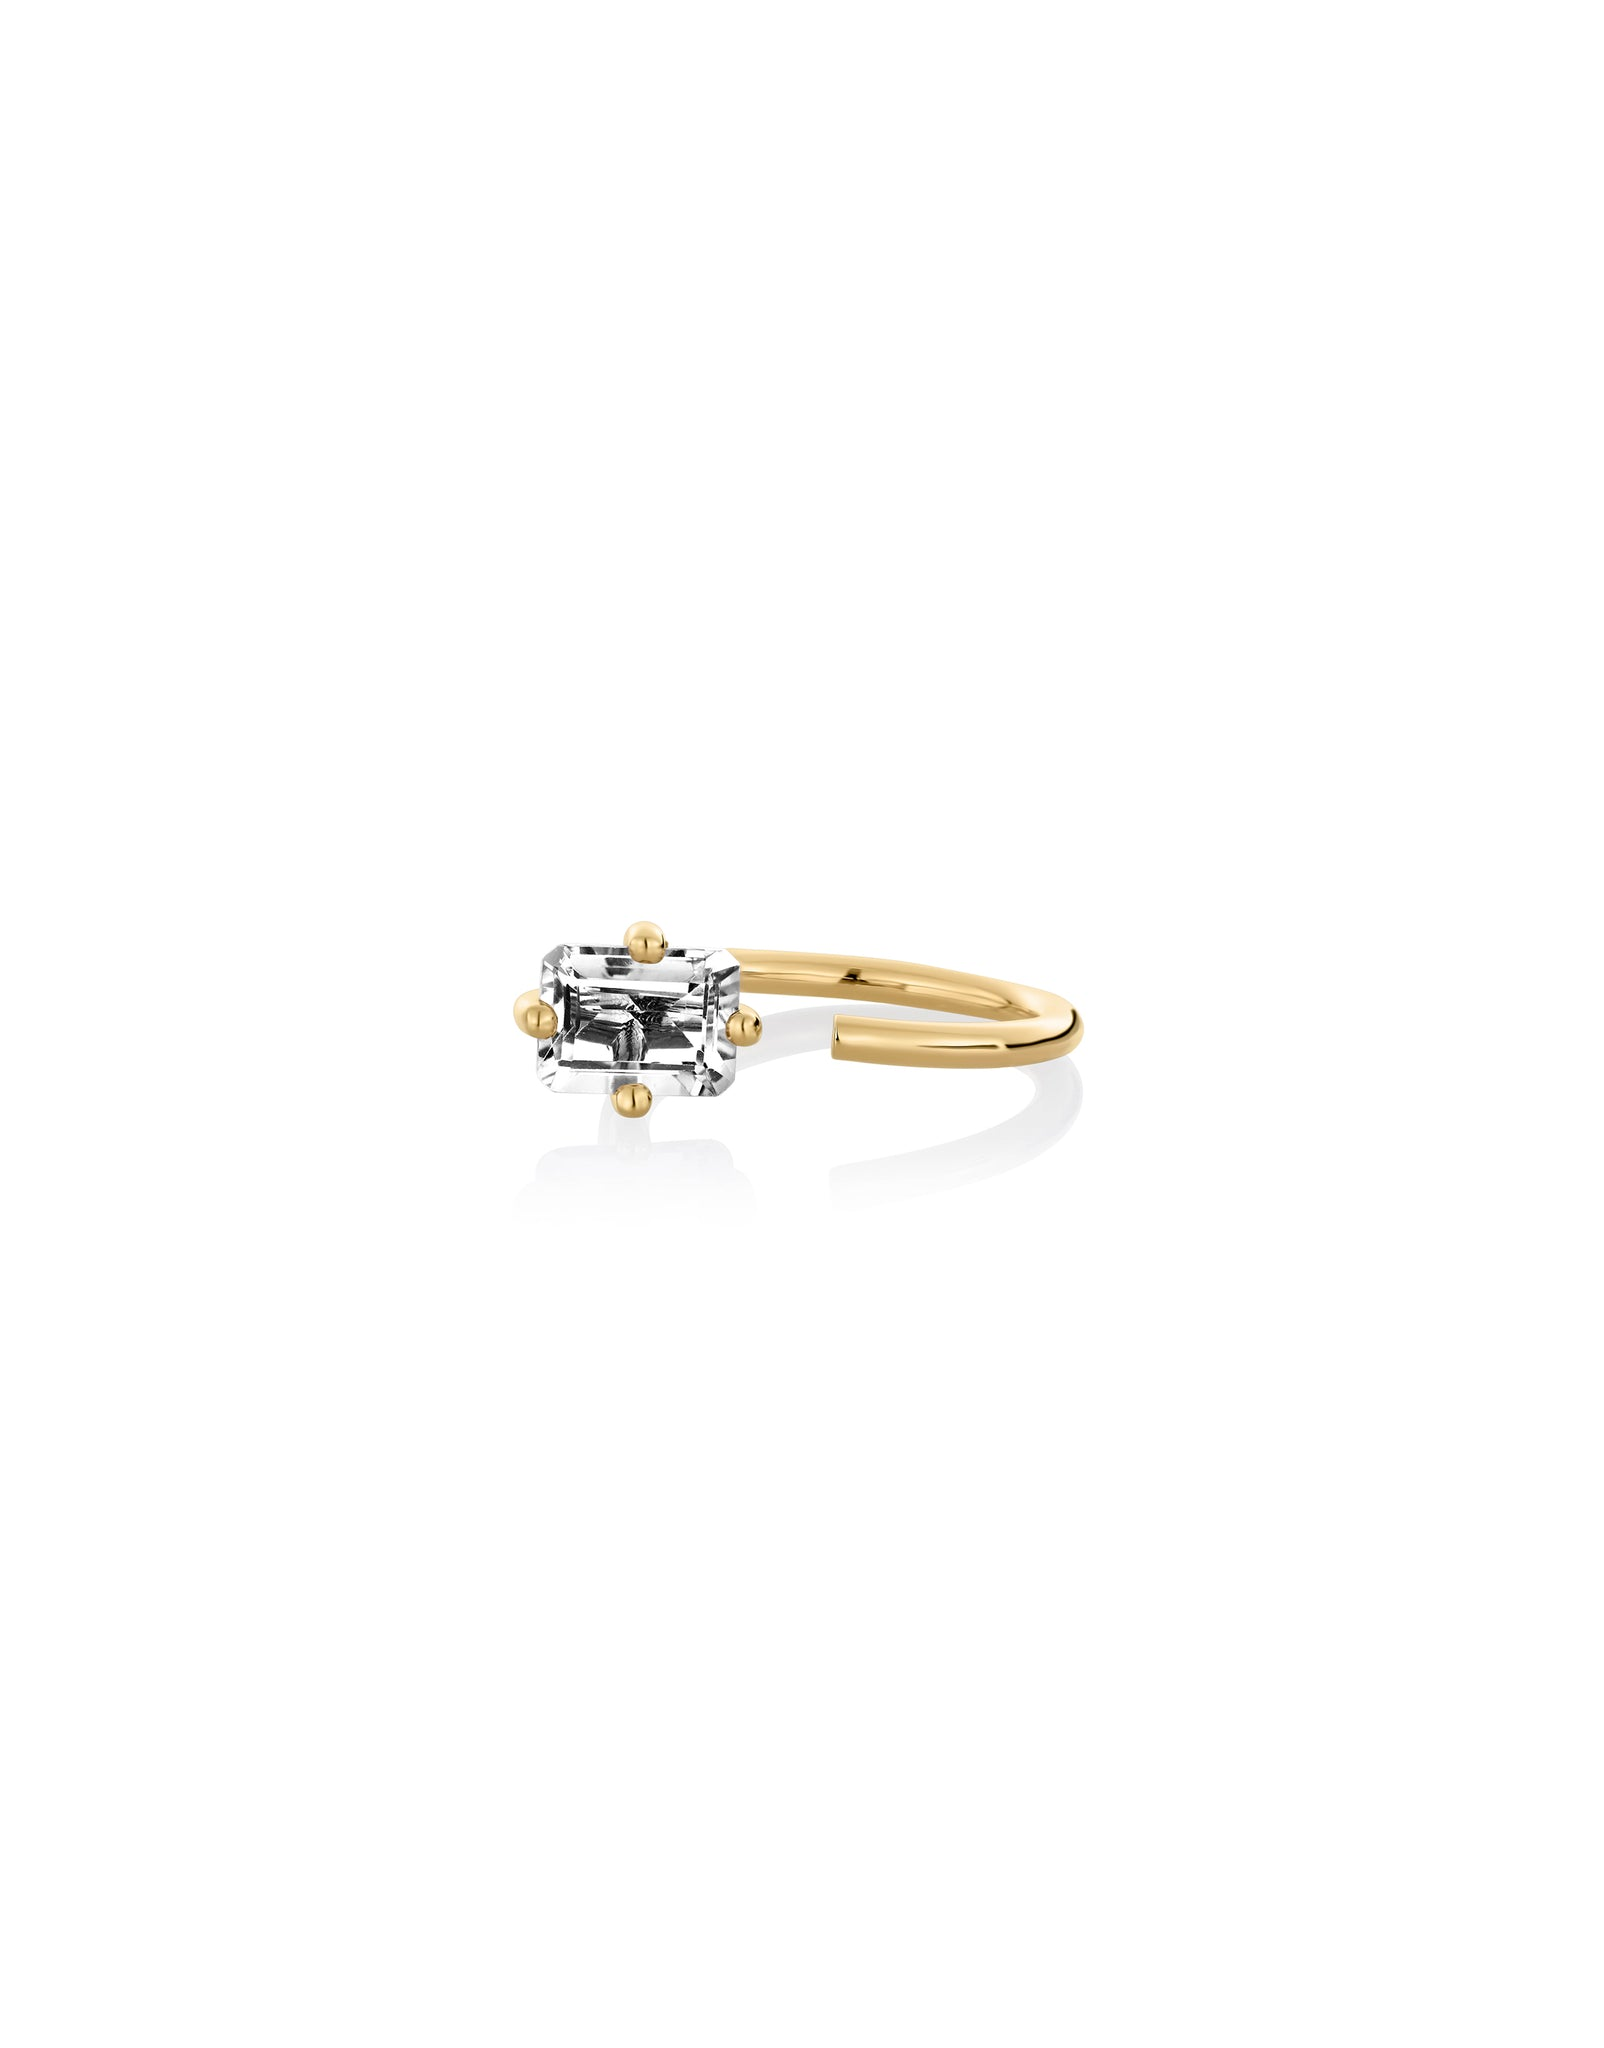 Ring 9K gold white topaz - Octogone ring white topaz - Nayestones